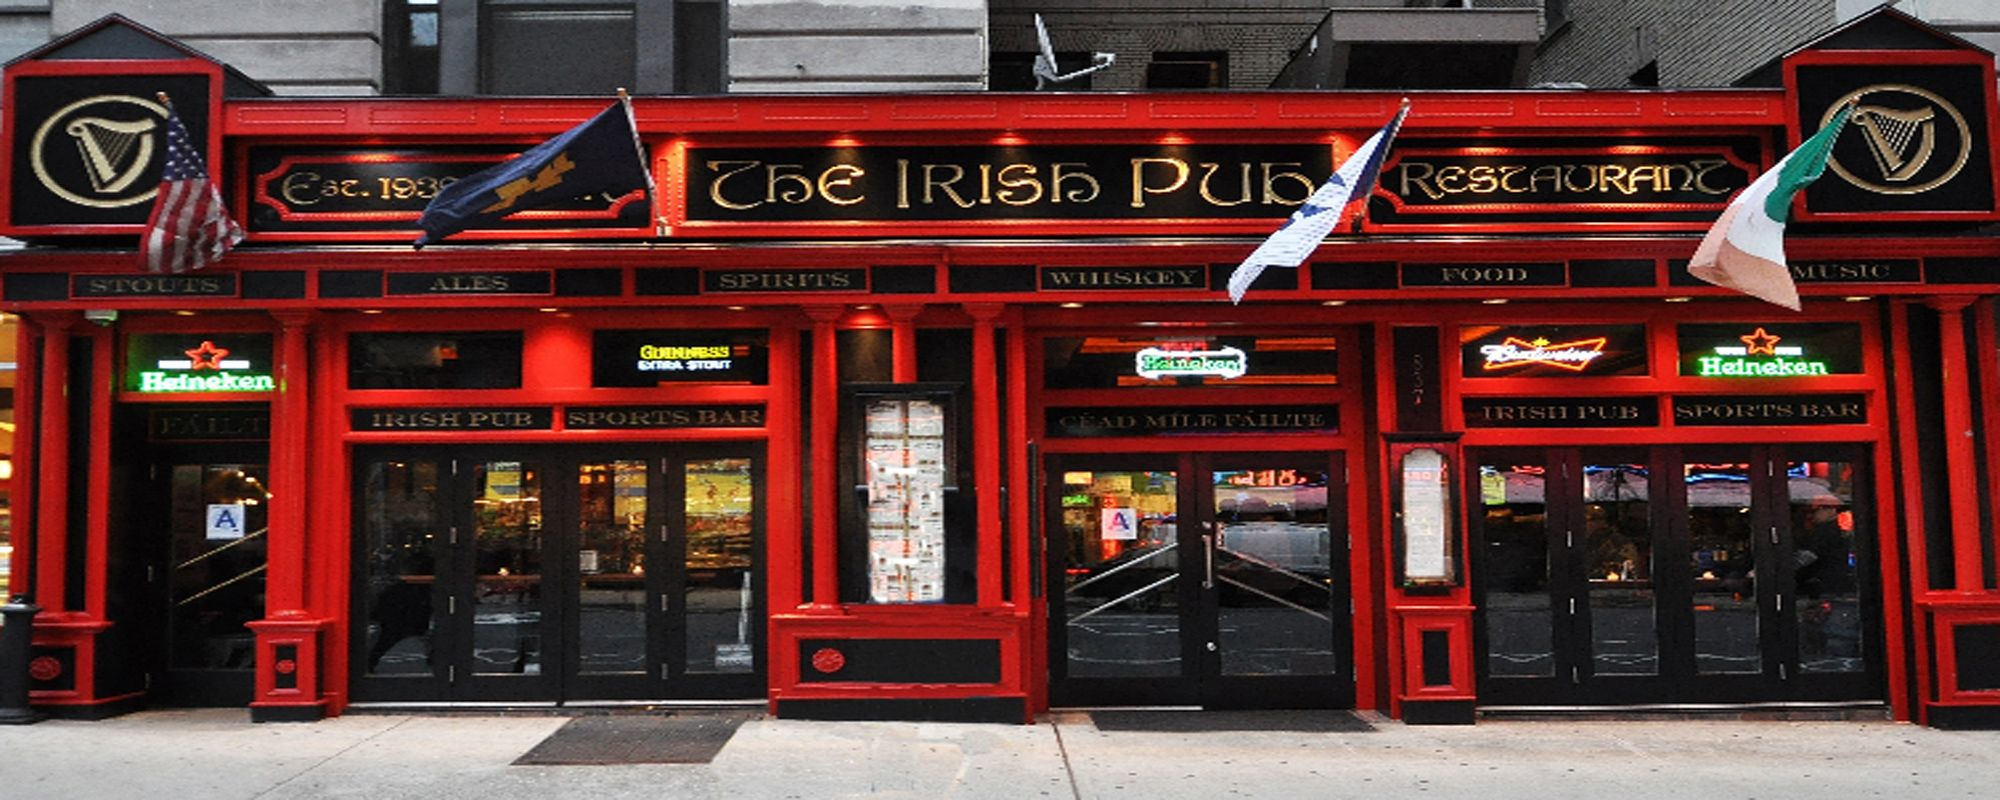 Sports Bar And Restaurant The Irish Pub Irish Pub Pub Nyc